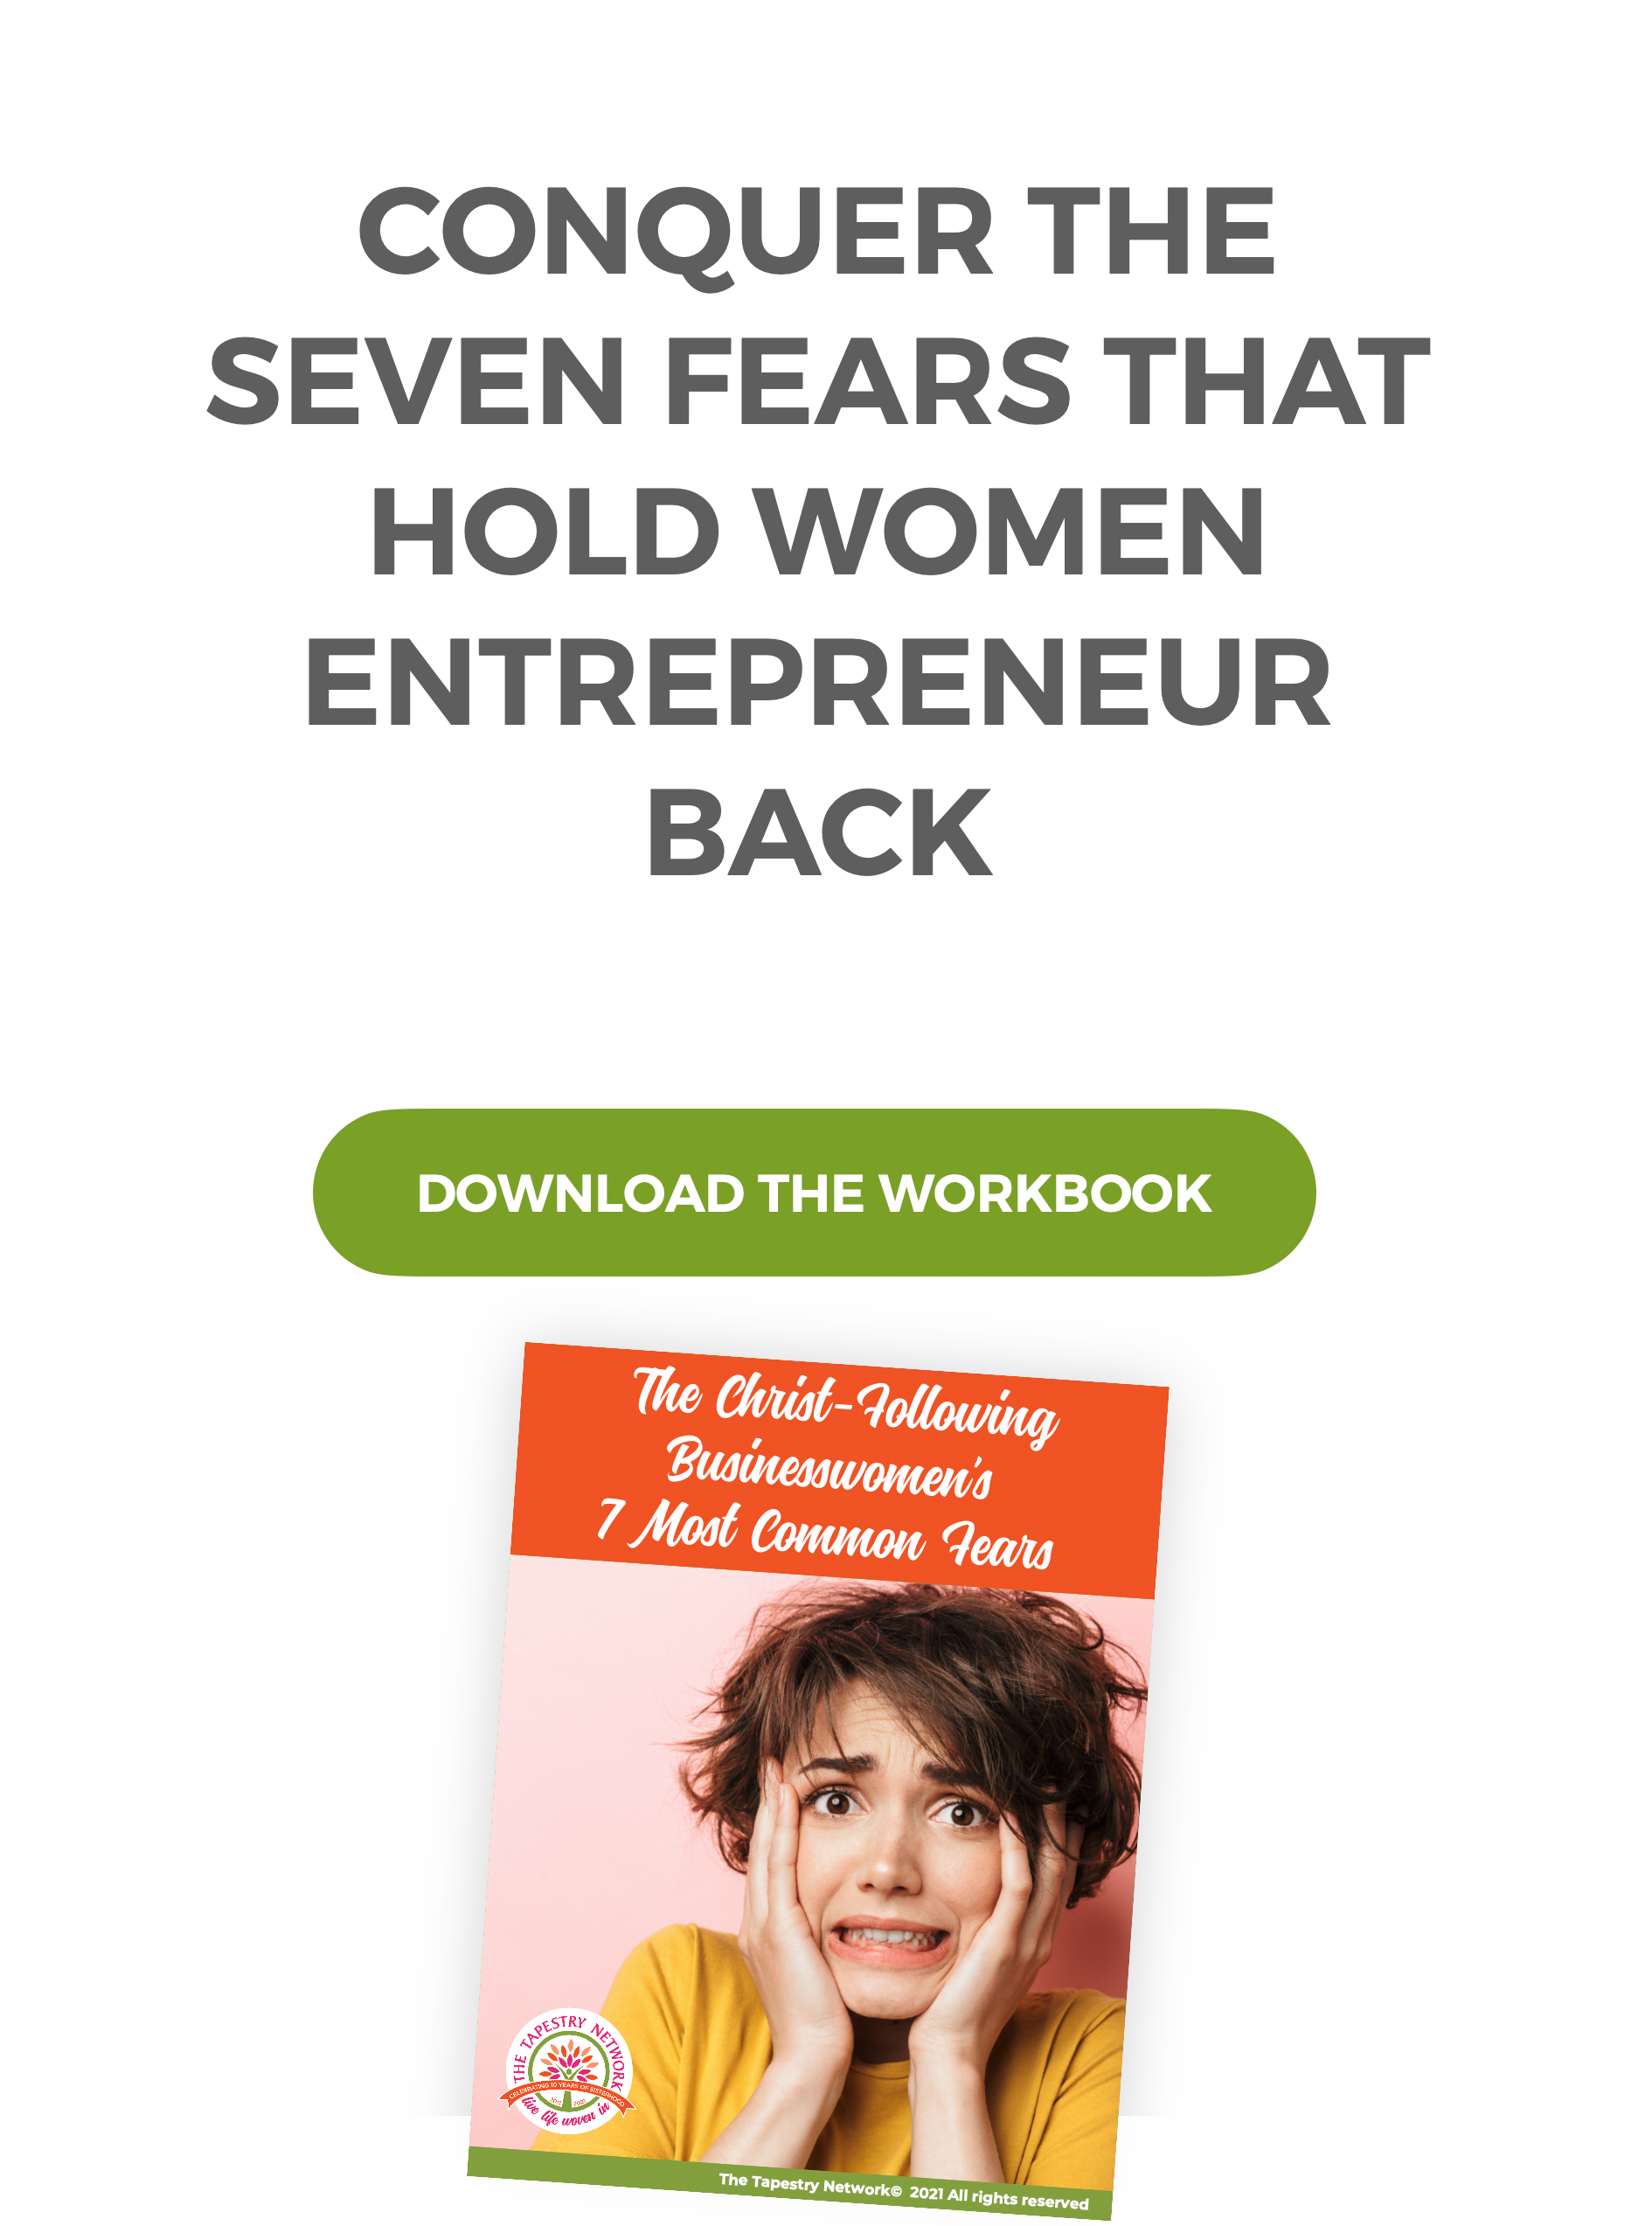 Download the Workbook - Conquer the Seven Fears that Hold Women Entrepreneur Back